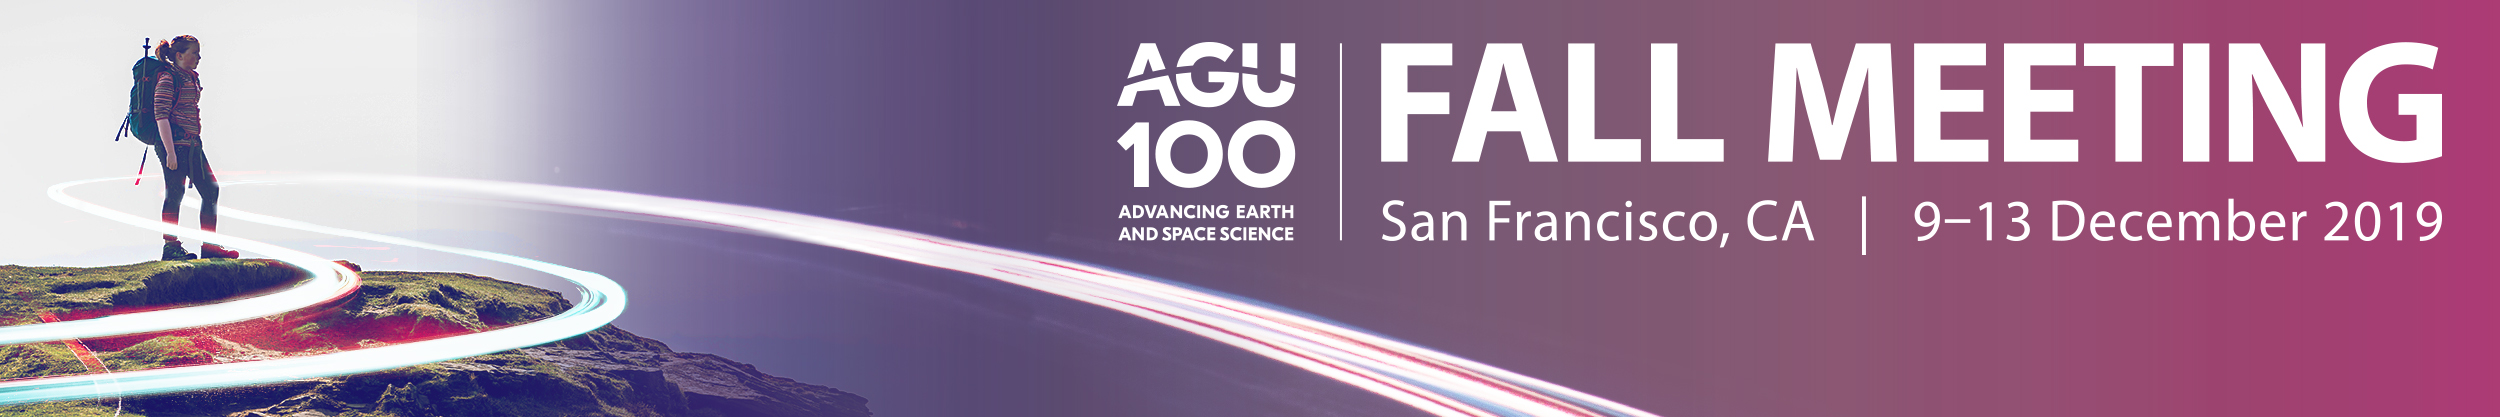 WAVES lab at the AGU Fall Meeting 2019